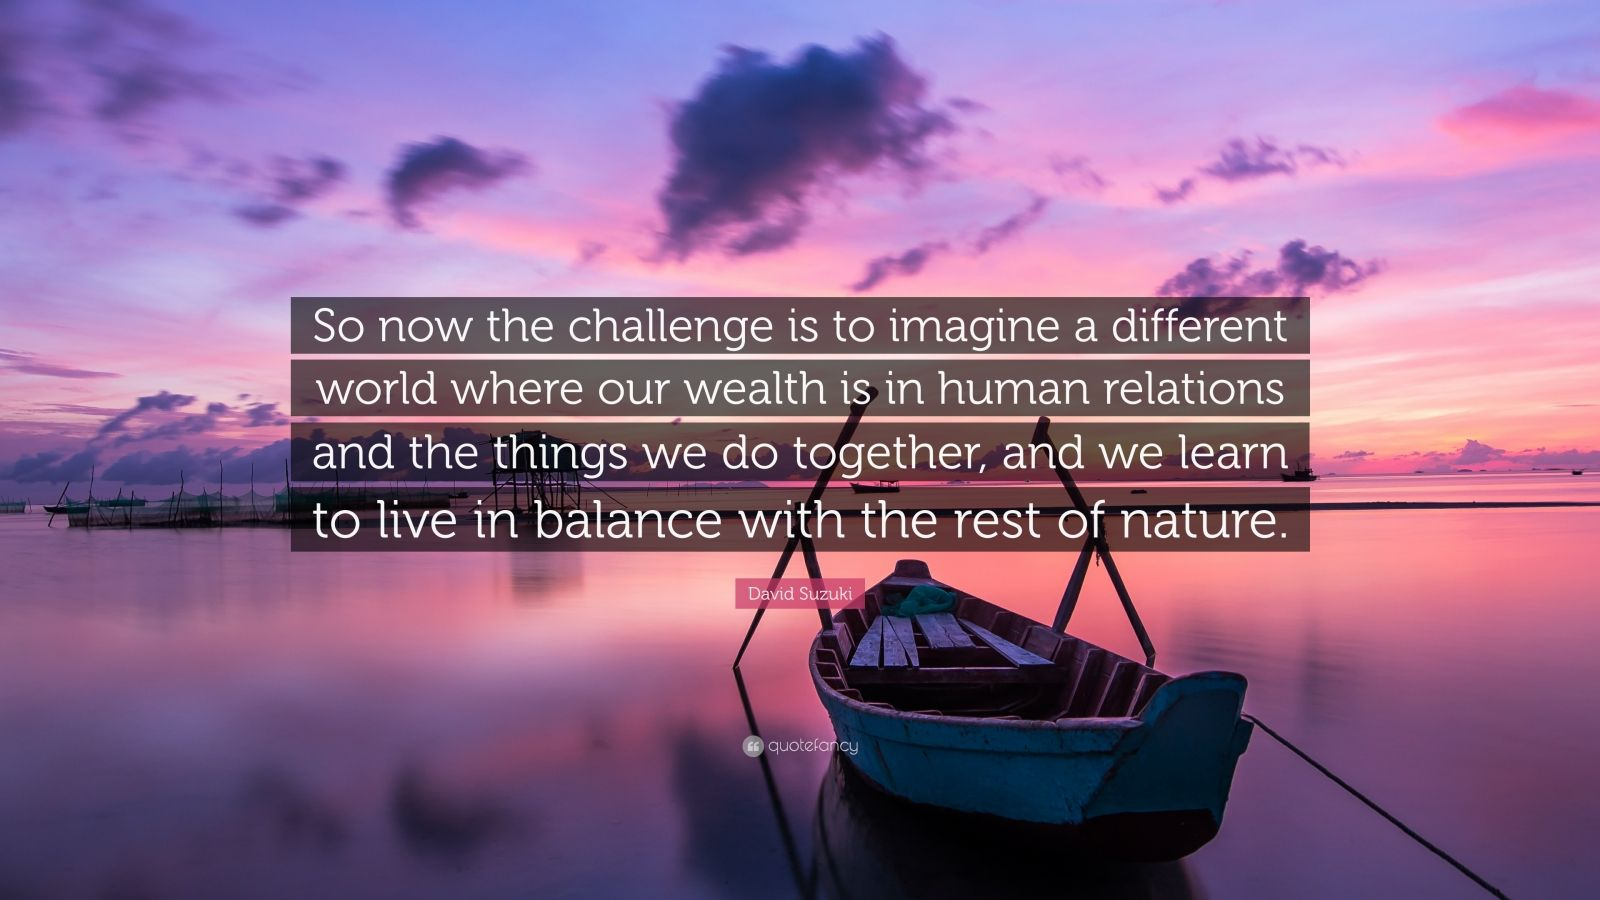 """David Suzuki Quote: """"So now the challenge is to imagine a different world where our wealth is in human relations and the things we do together, and we learn to live in balance with the rest of nature."""""""